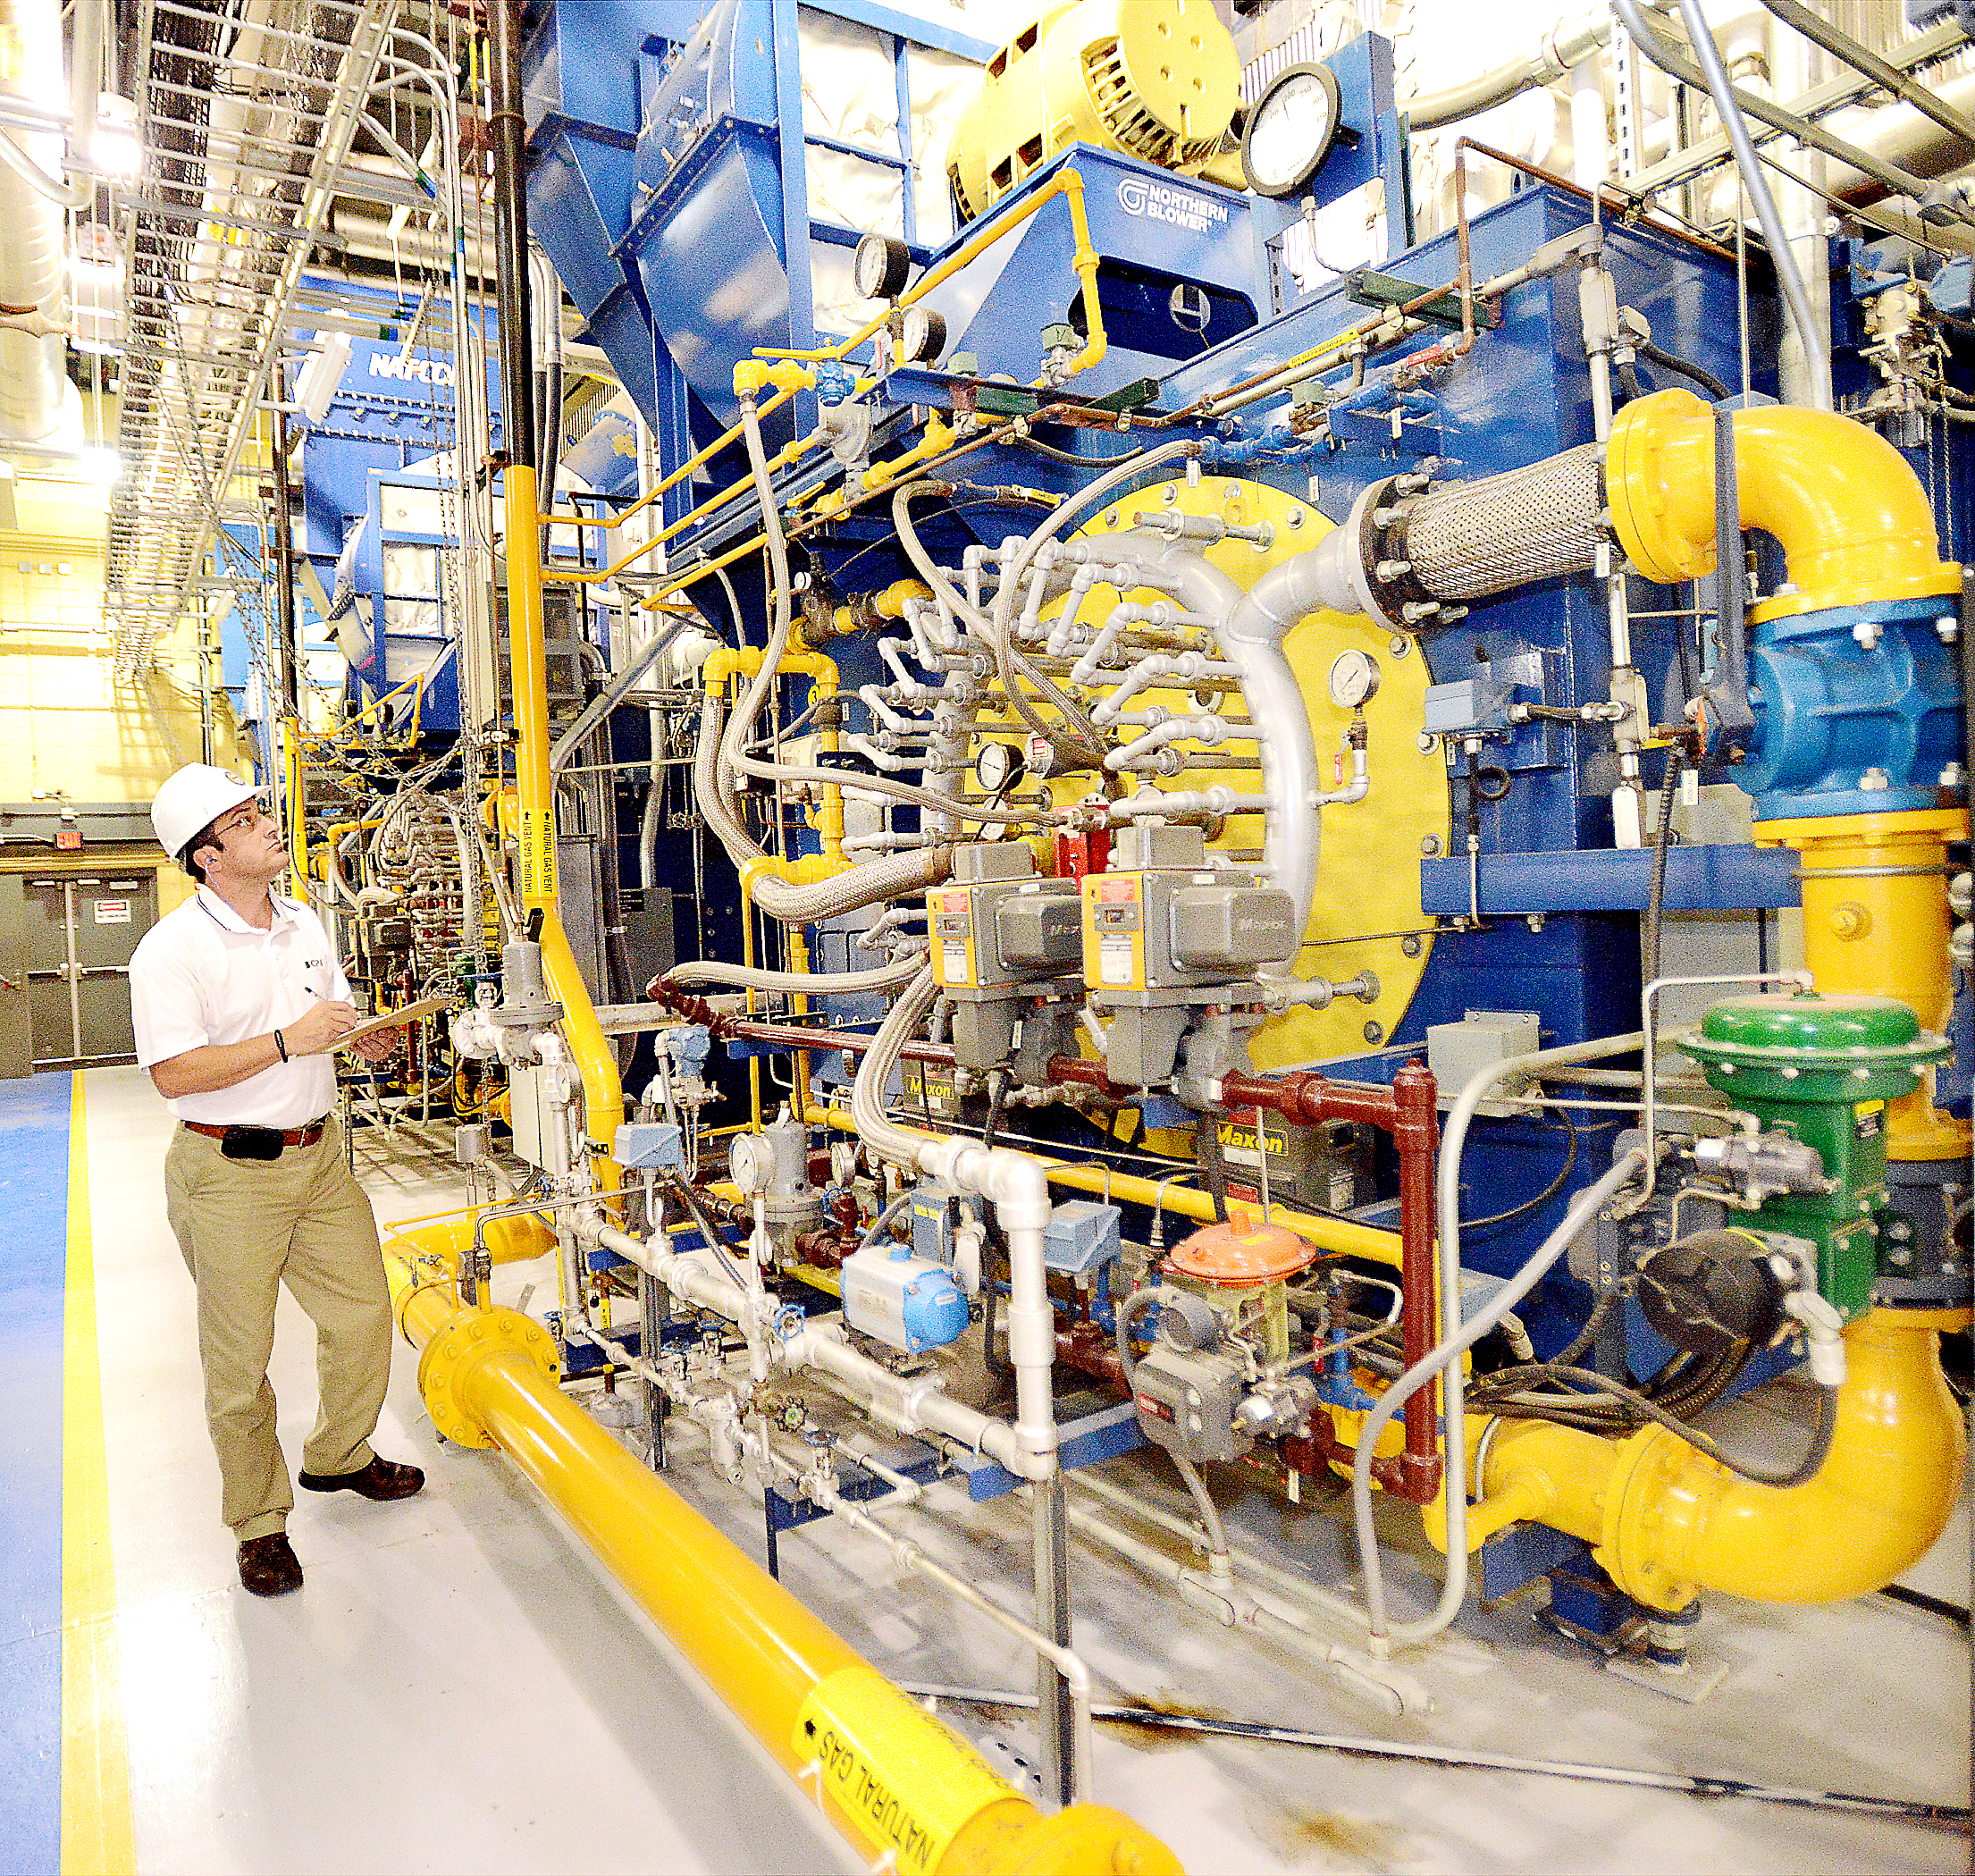 20140702radPittSteamBiz01 Marian Gagu, Plant Manager at Pitt's Carrillo St. Steam Plant where six gas-fired boilers have helped significantly reduce emissions. Multiple nozzles feed gas into each boiler in a circular pattern which is accelerated by blown air to achieve a more efficient burn.